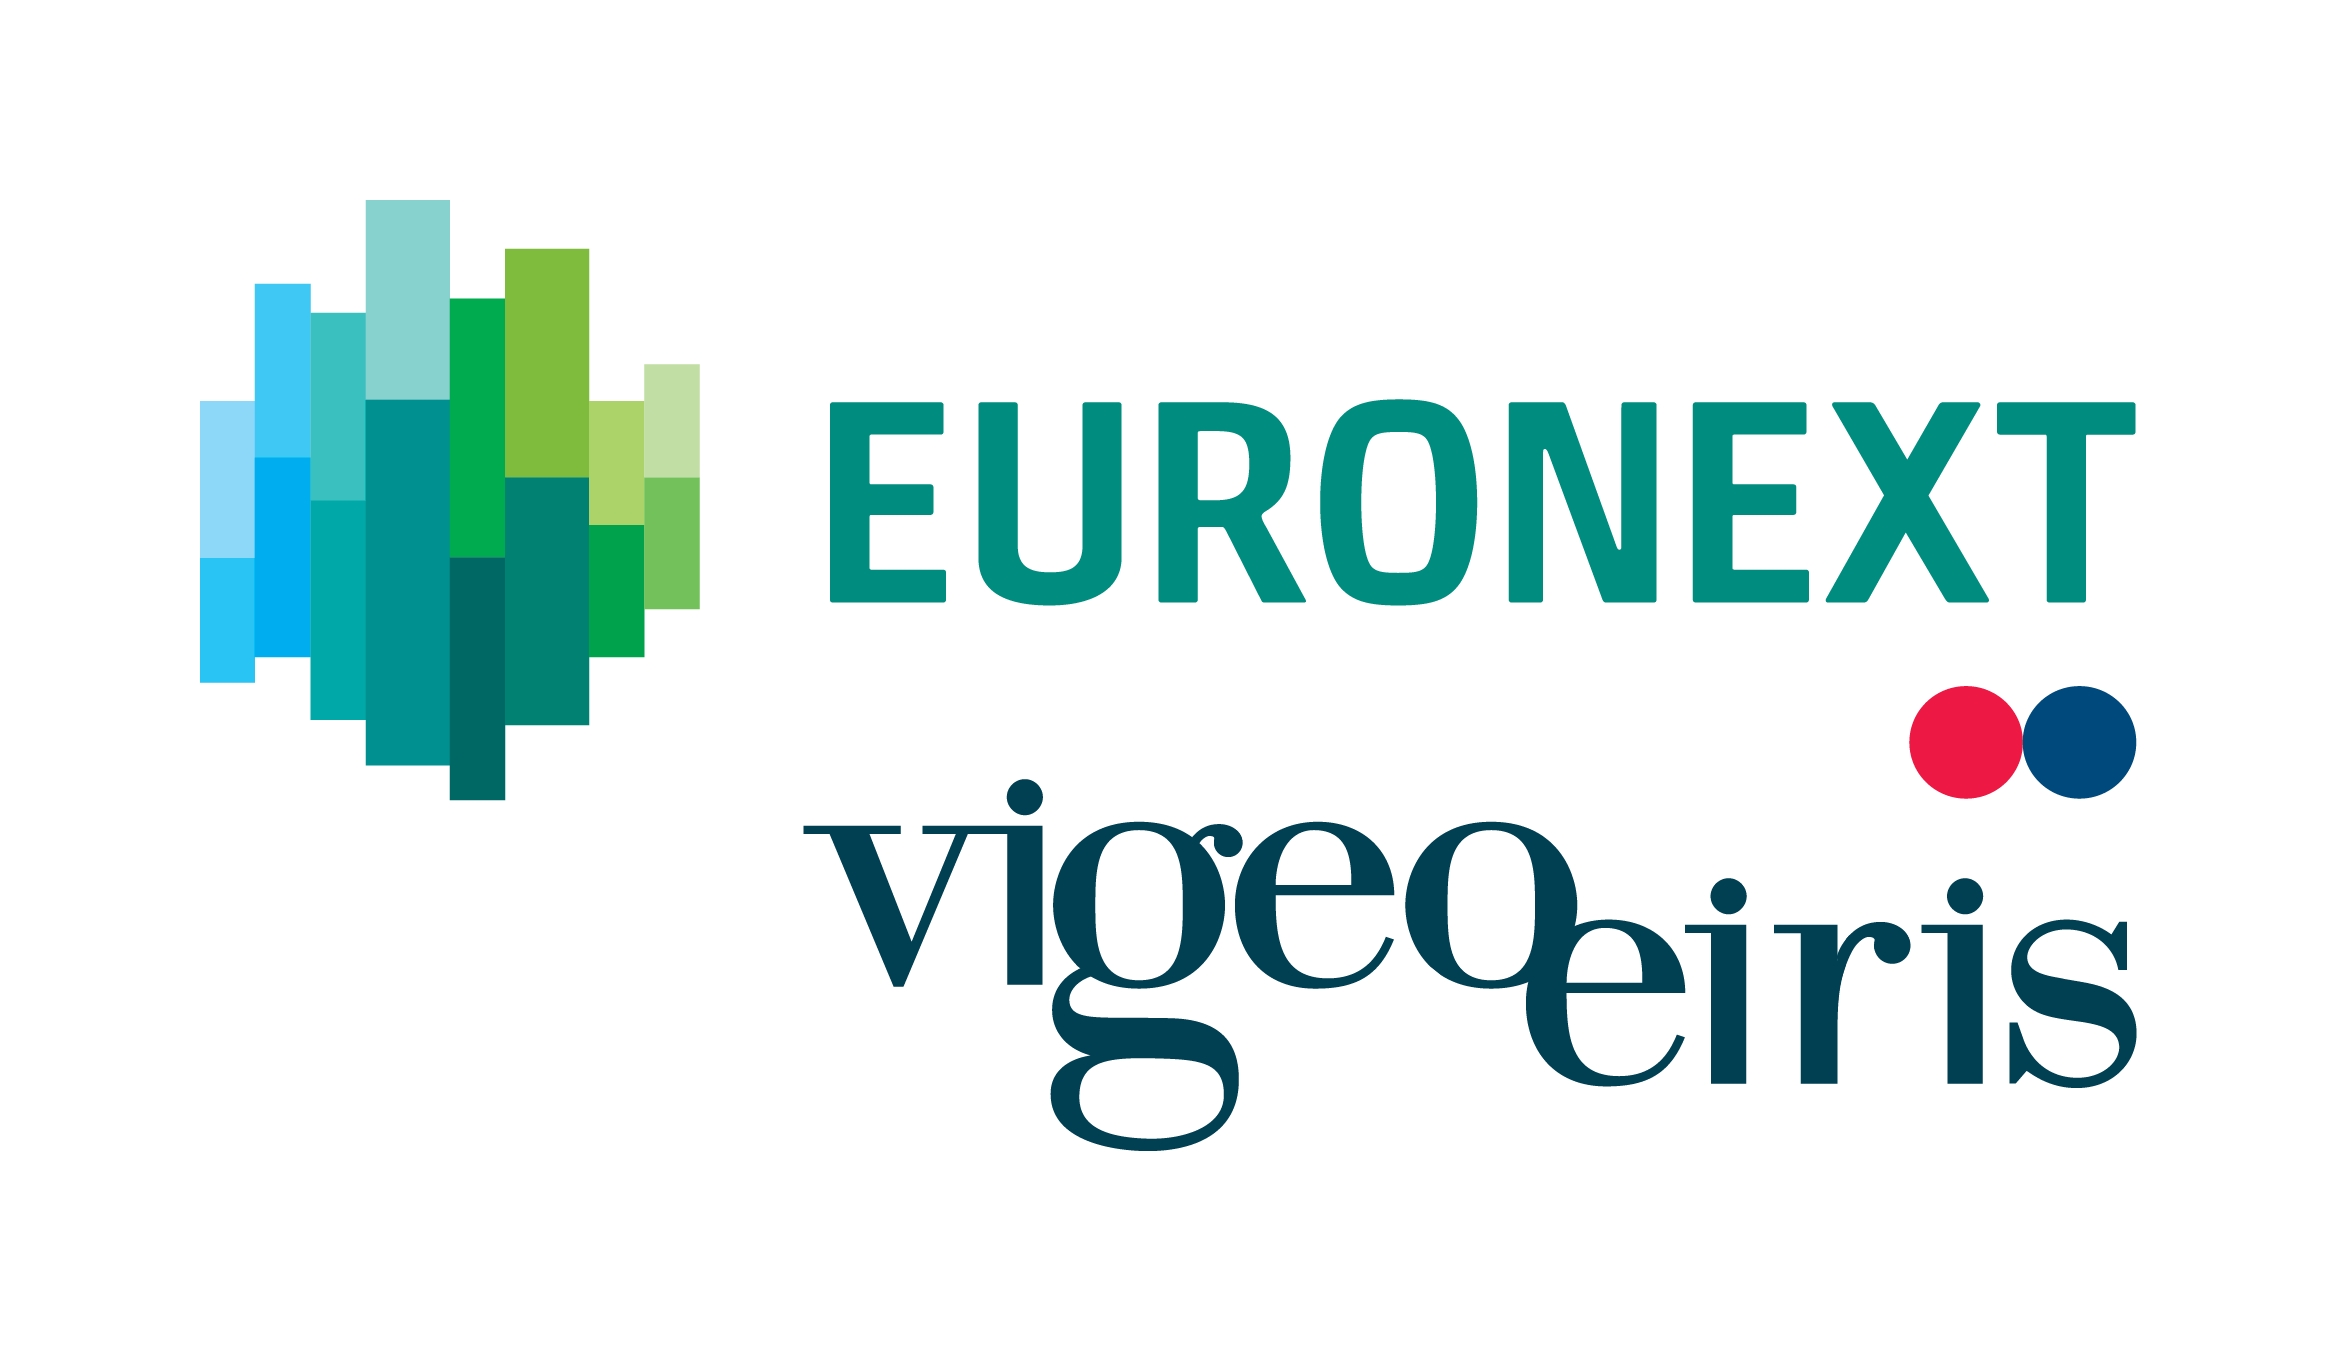 euronext-vigeo-eiris_port_no-i_colour